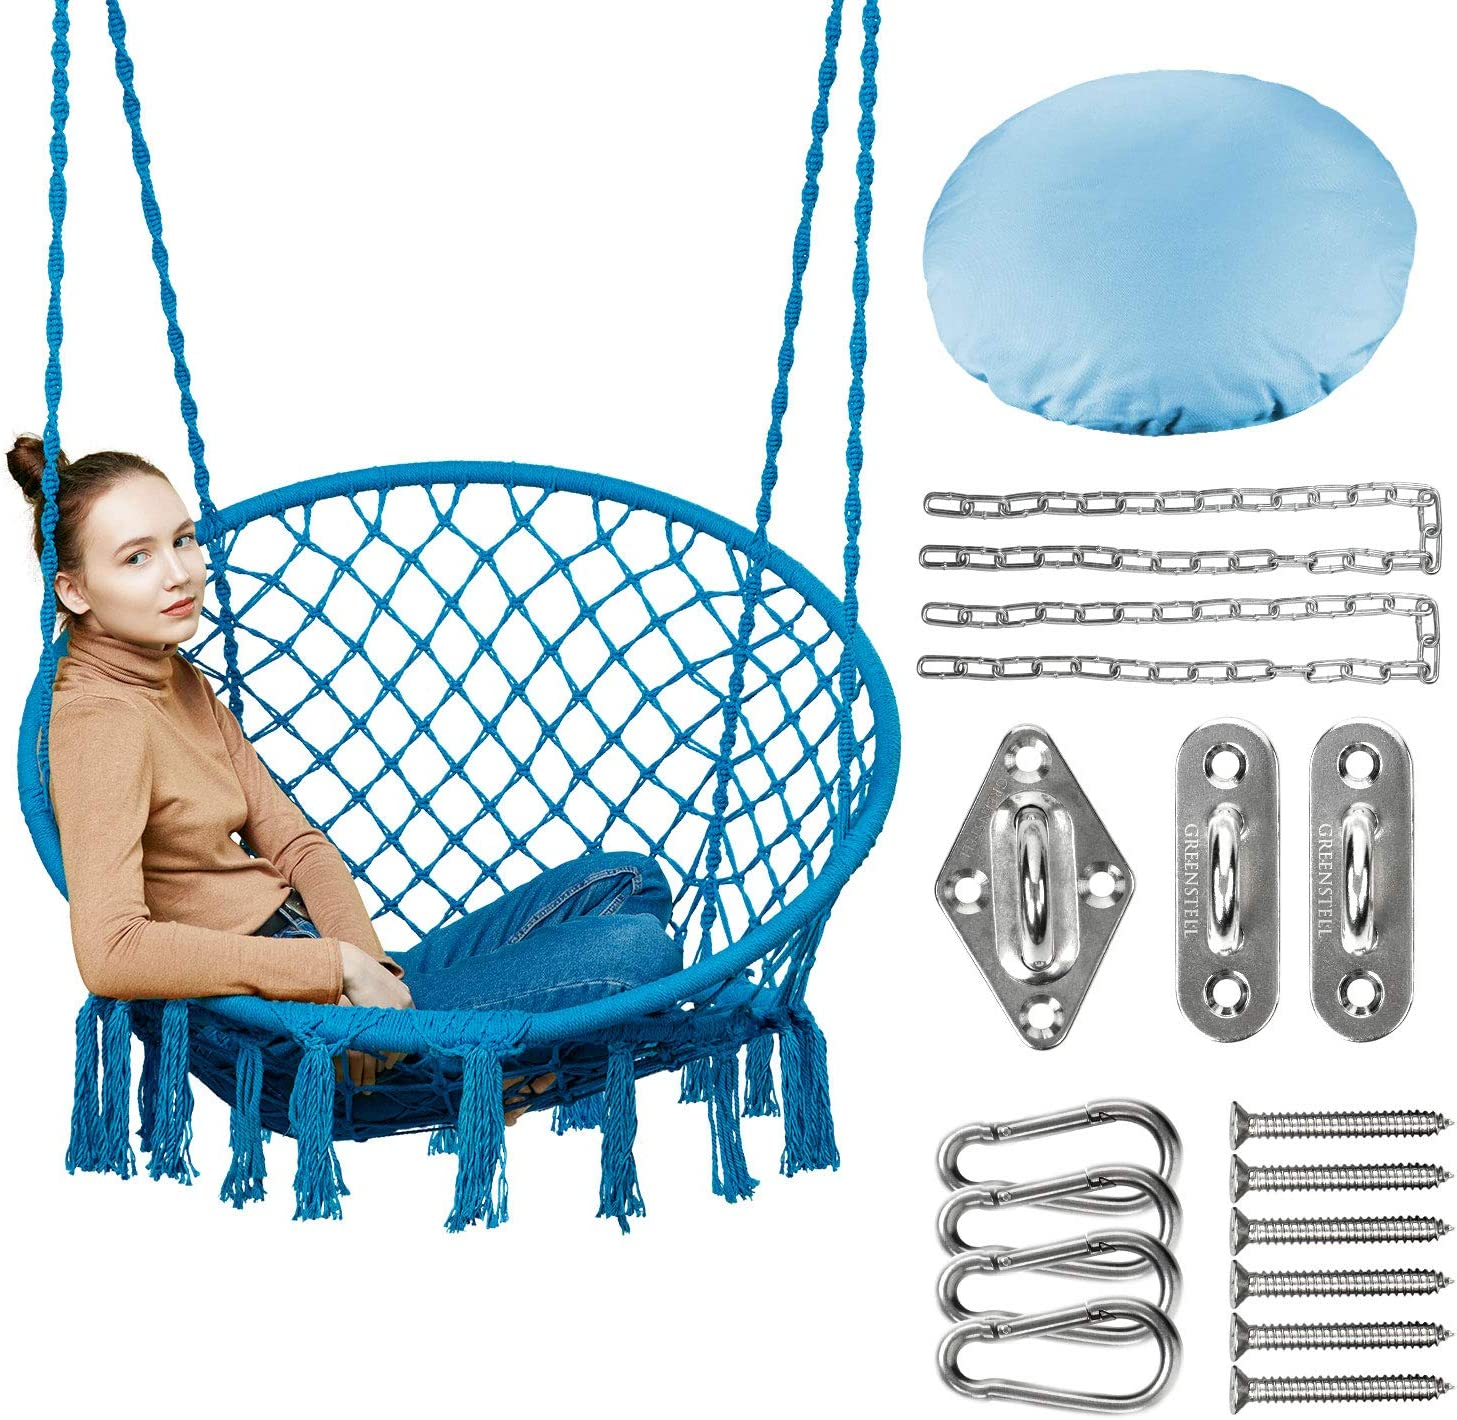 Greenstell Hammock Chair Macrame Swing with Hanging Kits, Hanging Cotton Rope Swing Chair, Comfortable Sturdy Hanging Chairs for Indoor, Outdoor, Home, Patio, Yard, Garden, 330LBS Capacity (Blue)